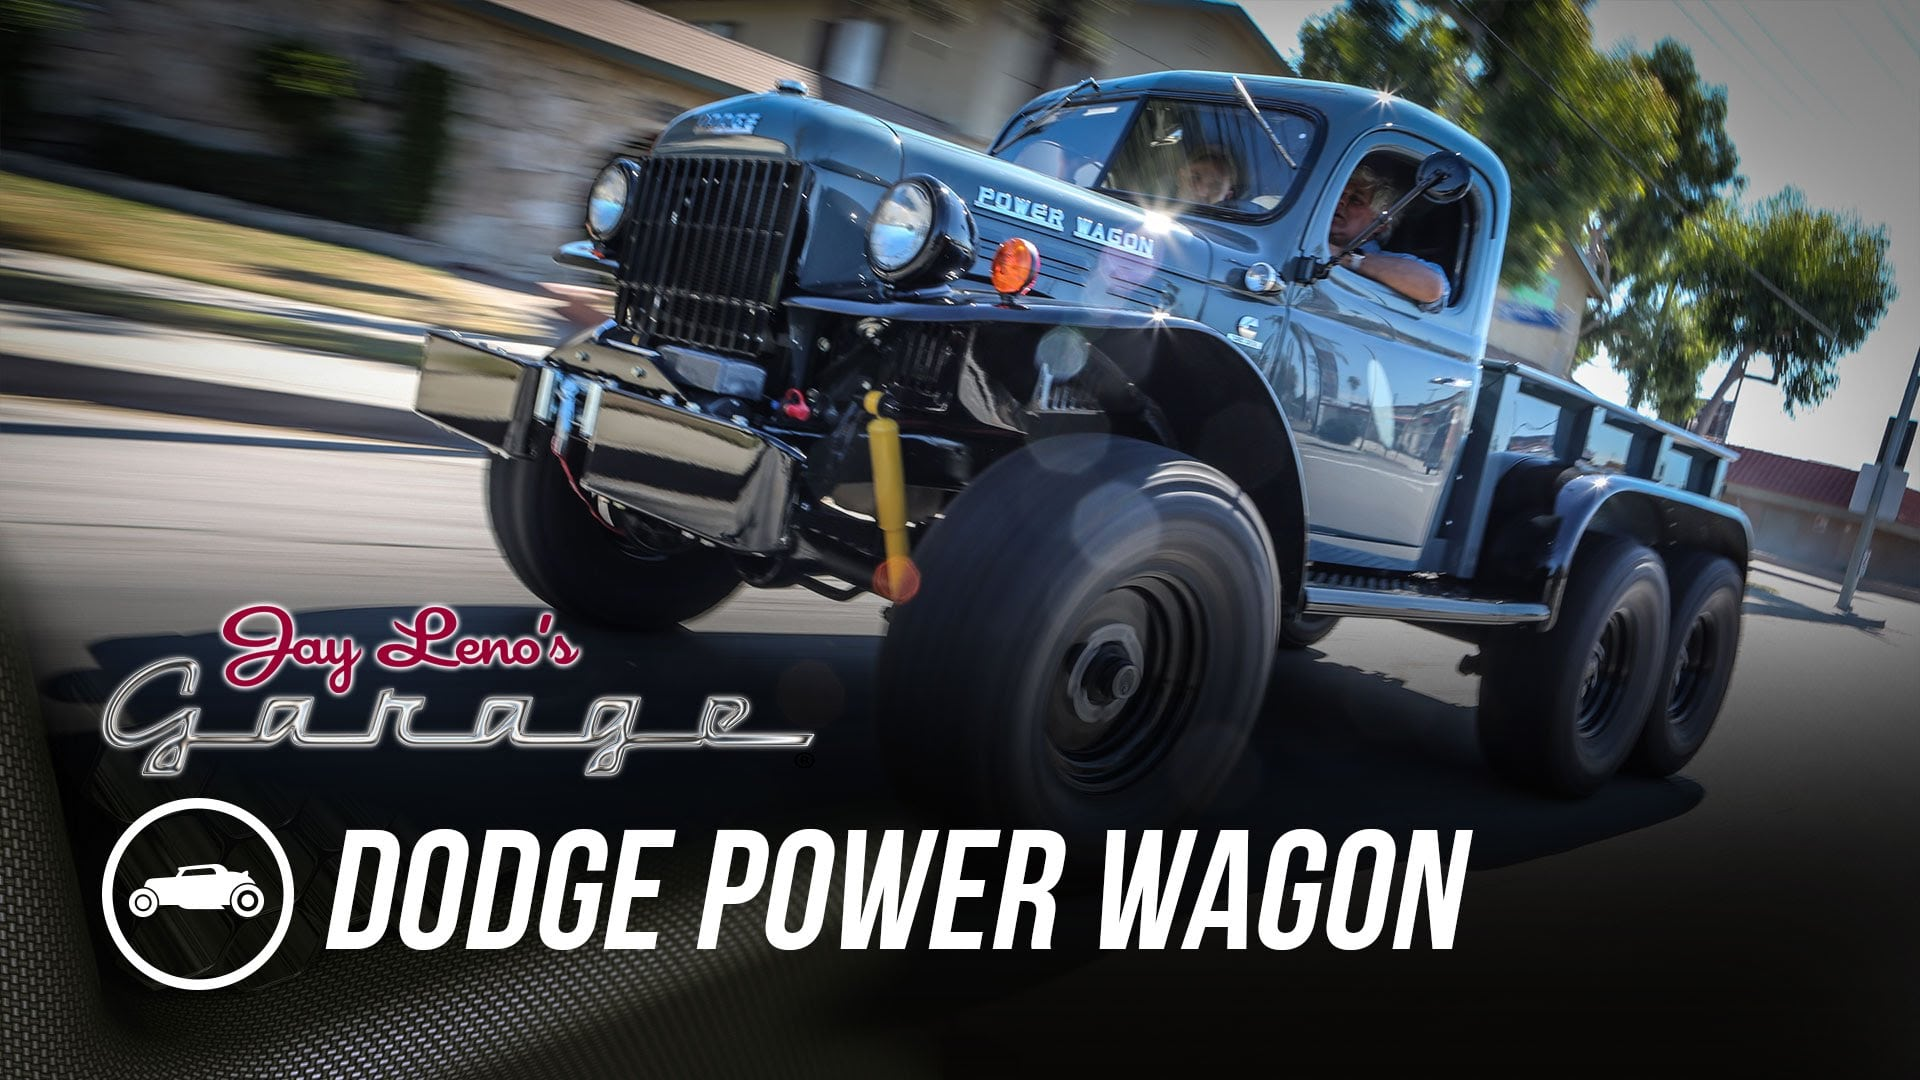 Dodge Power Wagon 2015 | Specs, Price, Release Date, Redesign